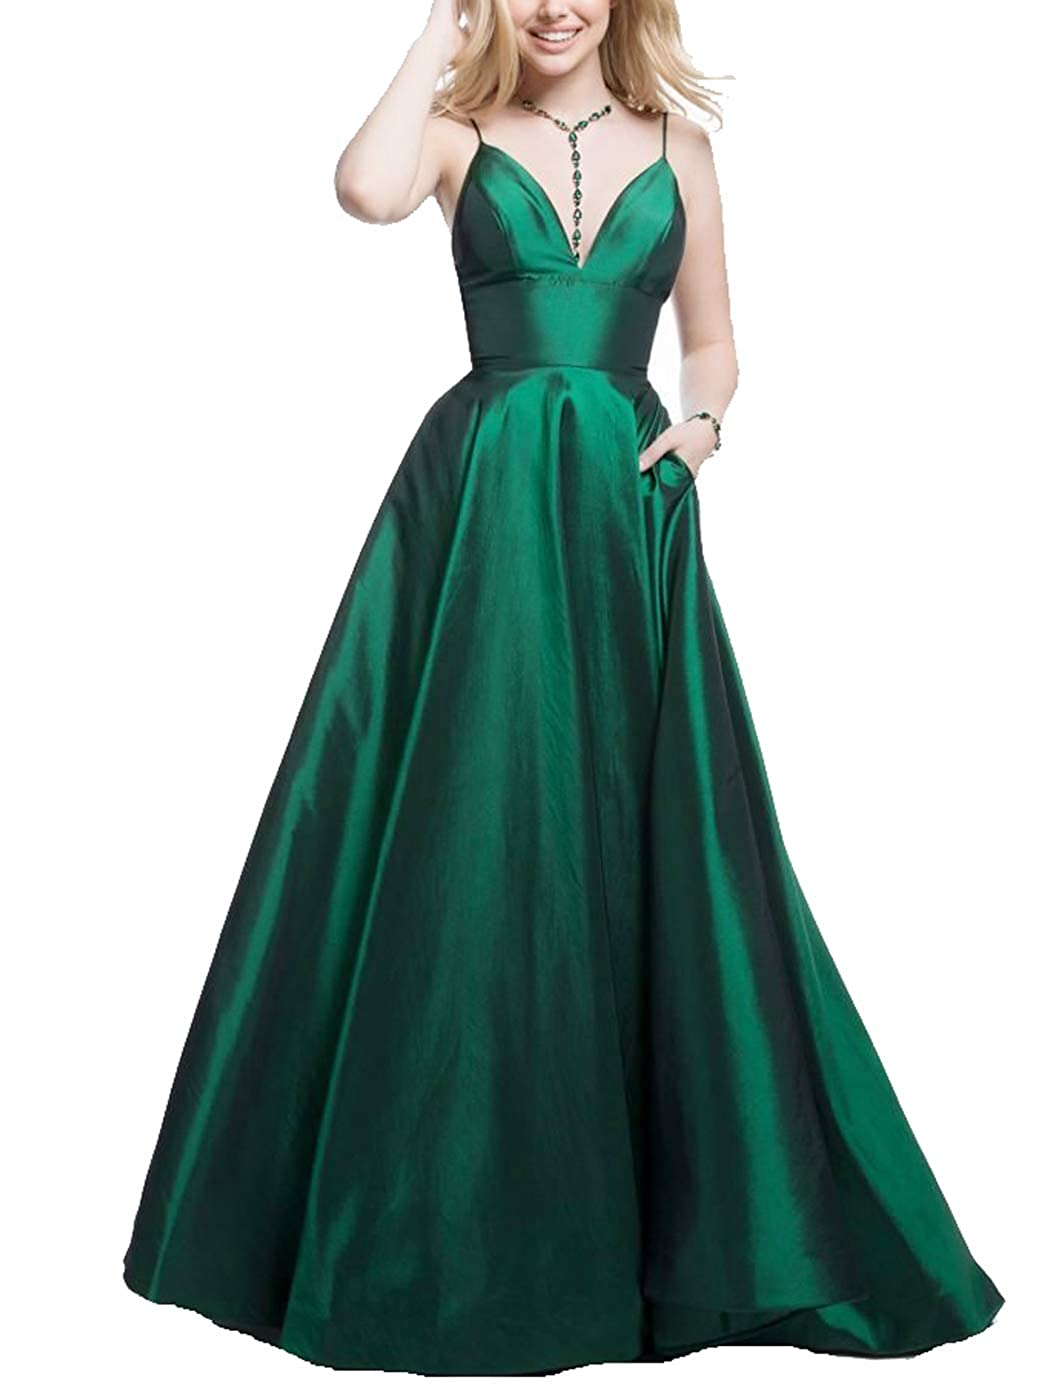 Green Tmaoomo Long Prom Dresses for Women 2019 Spaghetti Strap Evening Ball Gowns with Pockets